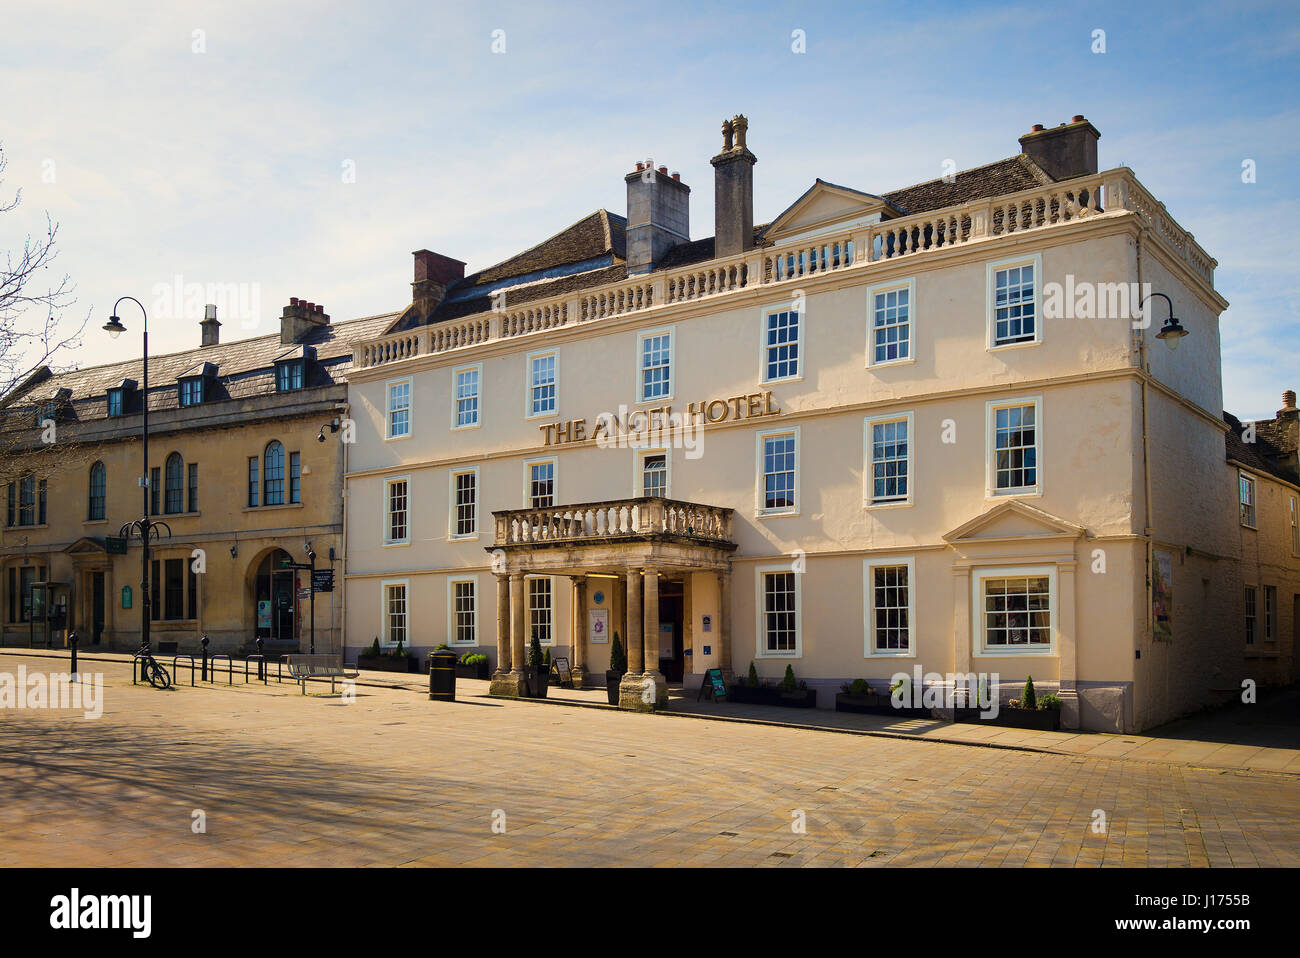 The Angel Hotel in the centre of Chippenham Wiltshire England UK - Stock Image